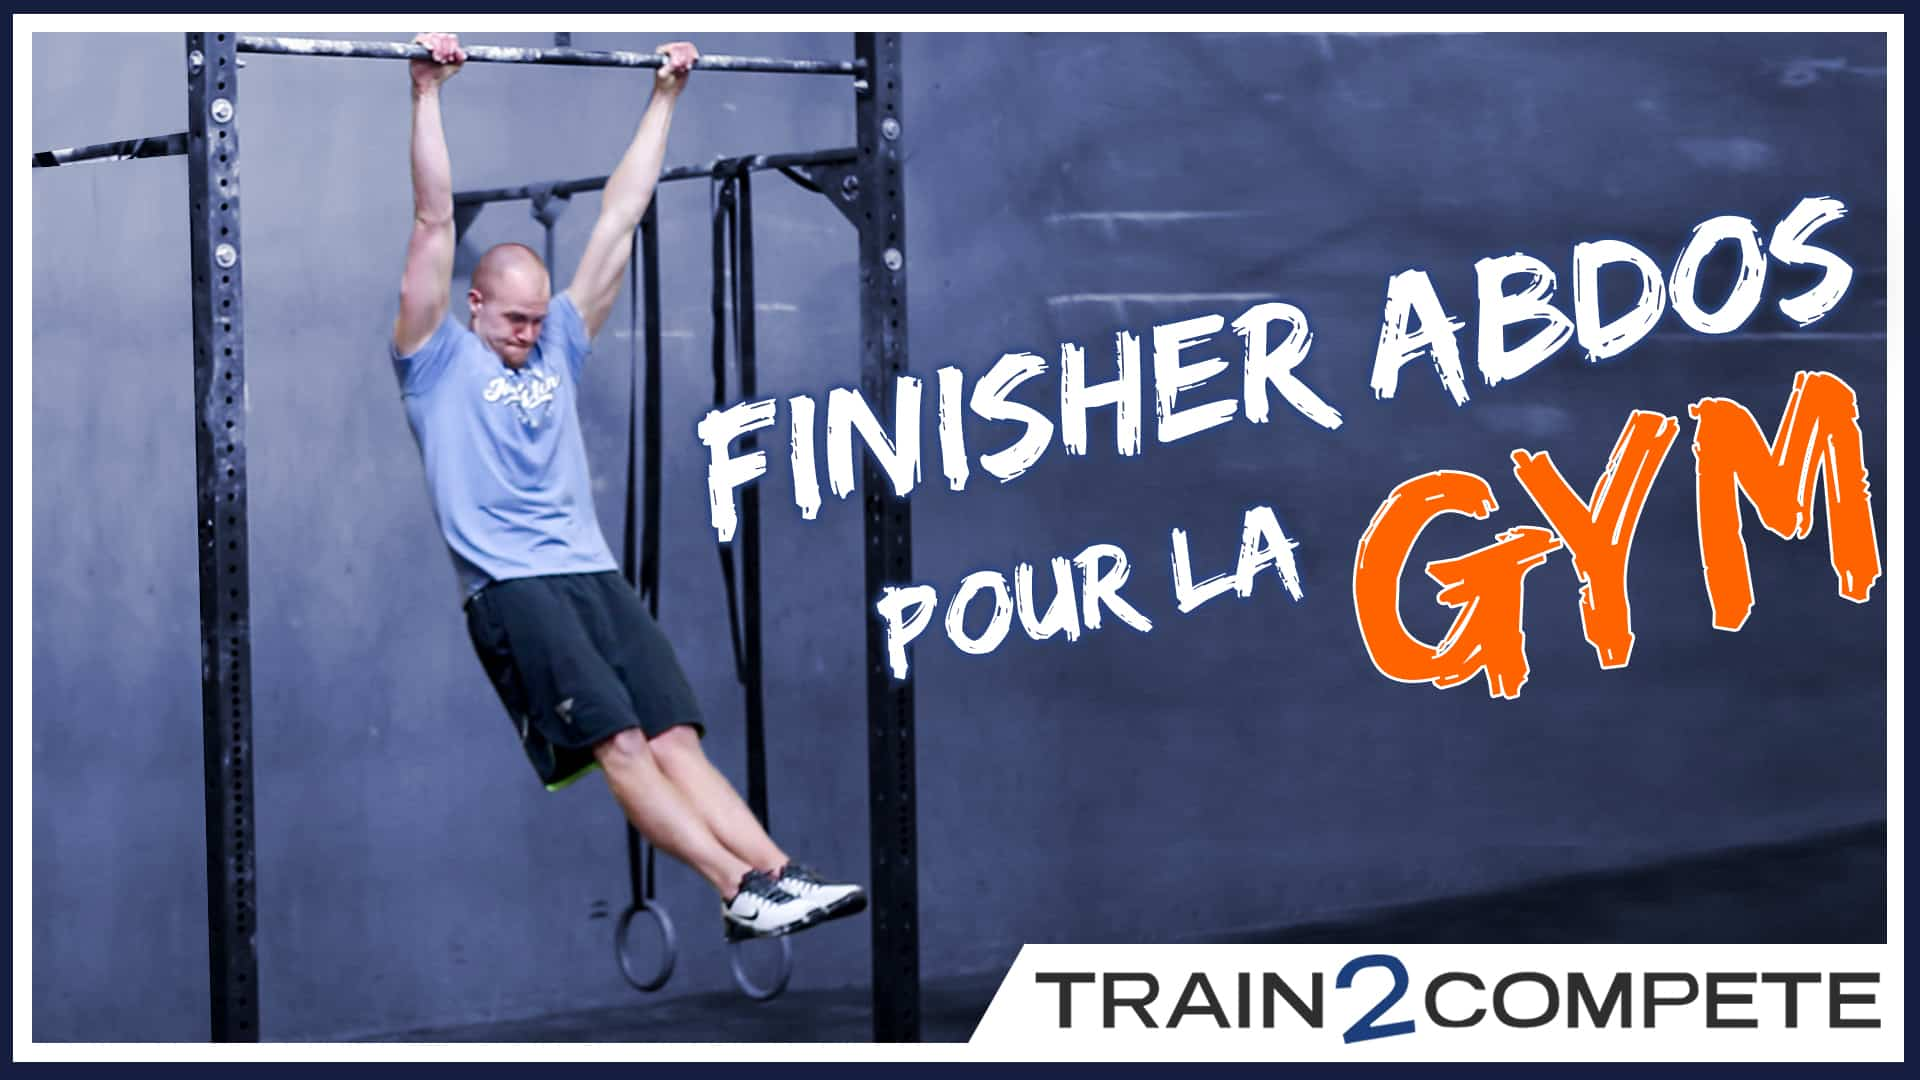 Finisher abdos – Toes-to-bar – CrossFit